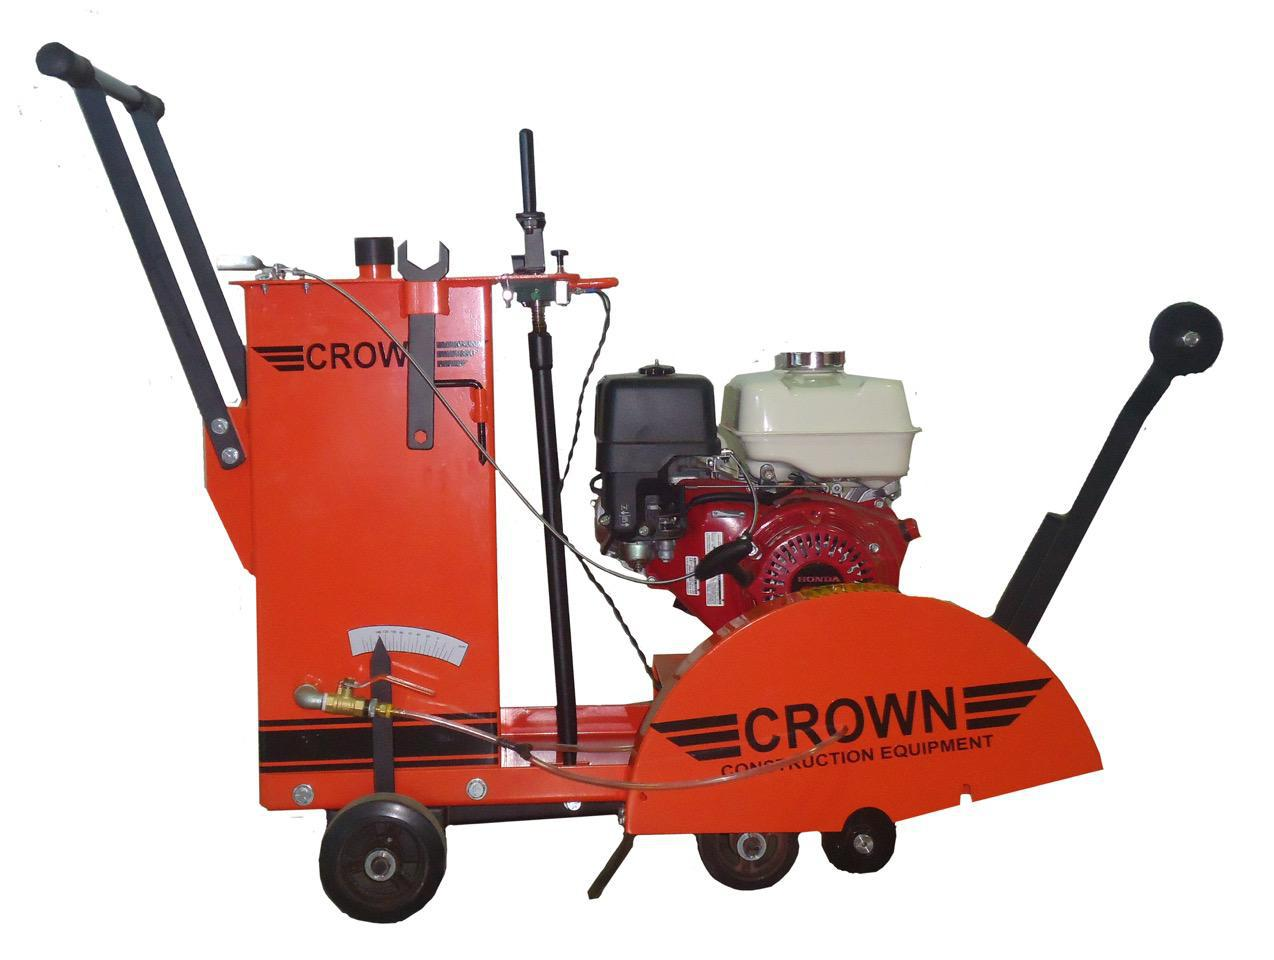 crown JCS Sturdi-Concrete Saw